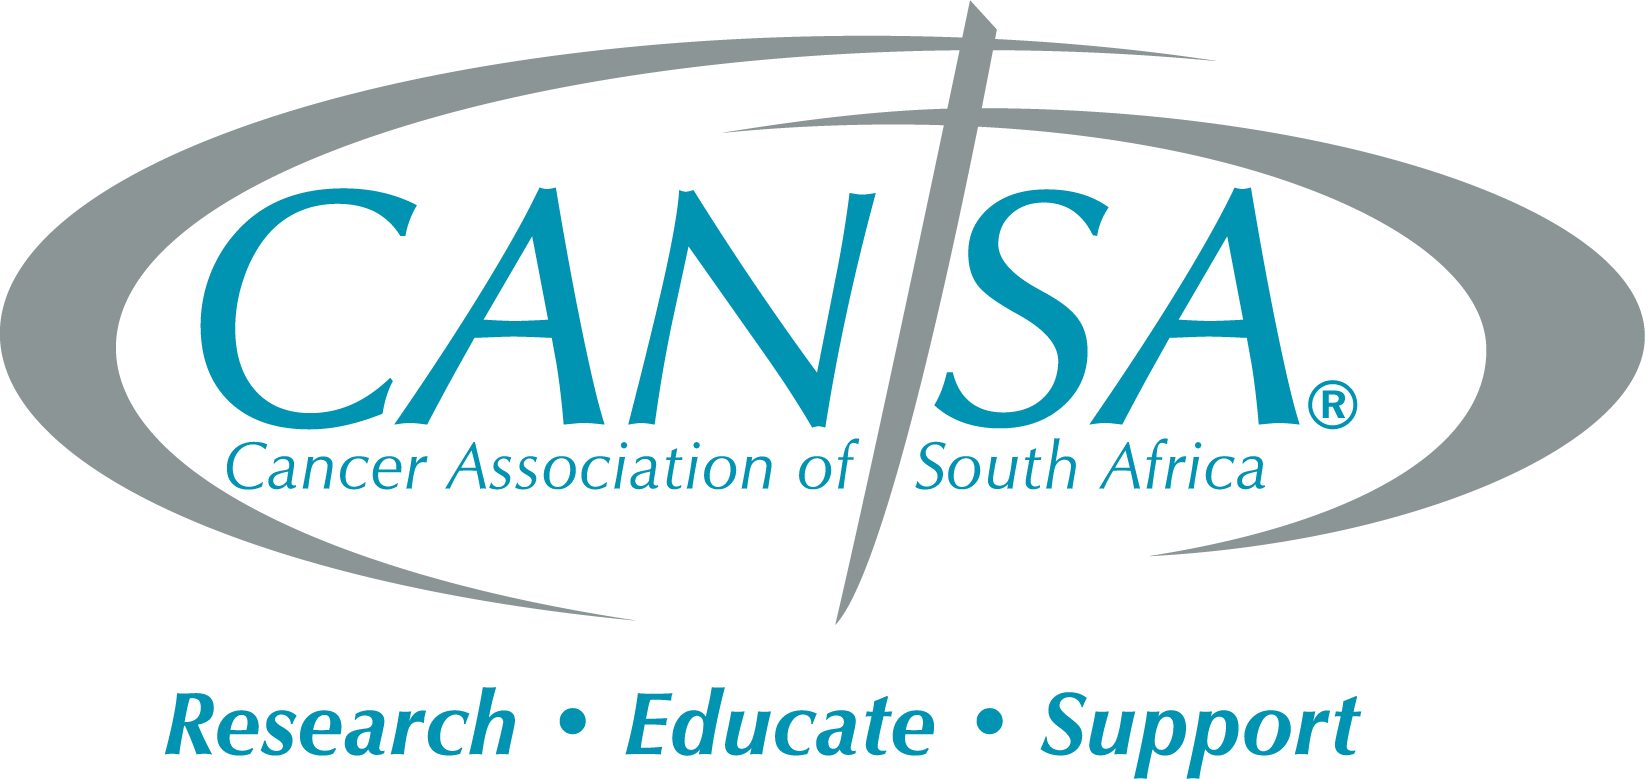 Cancer Association of South Africa NPC